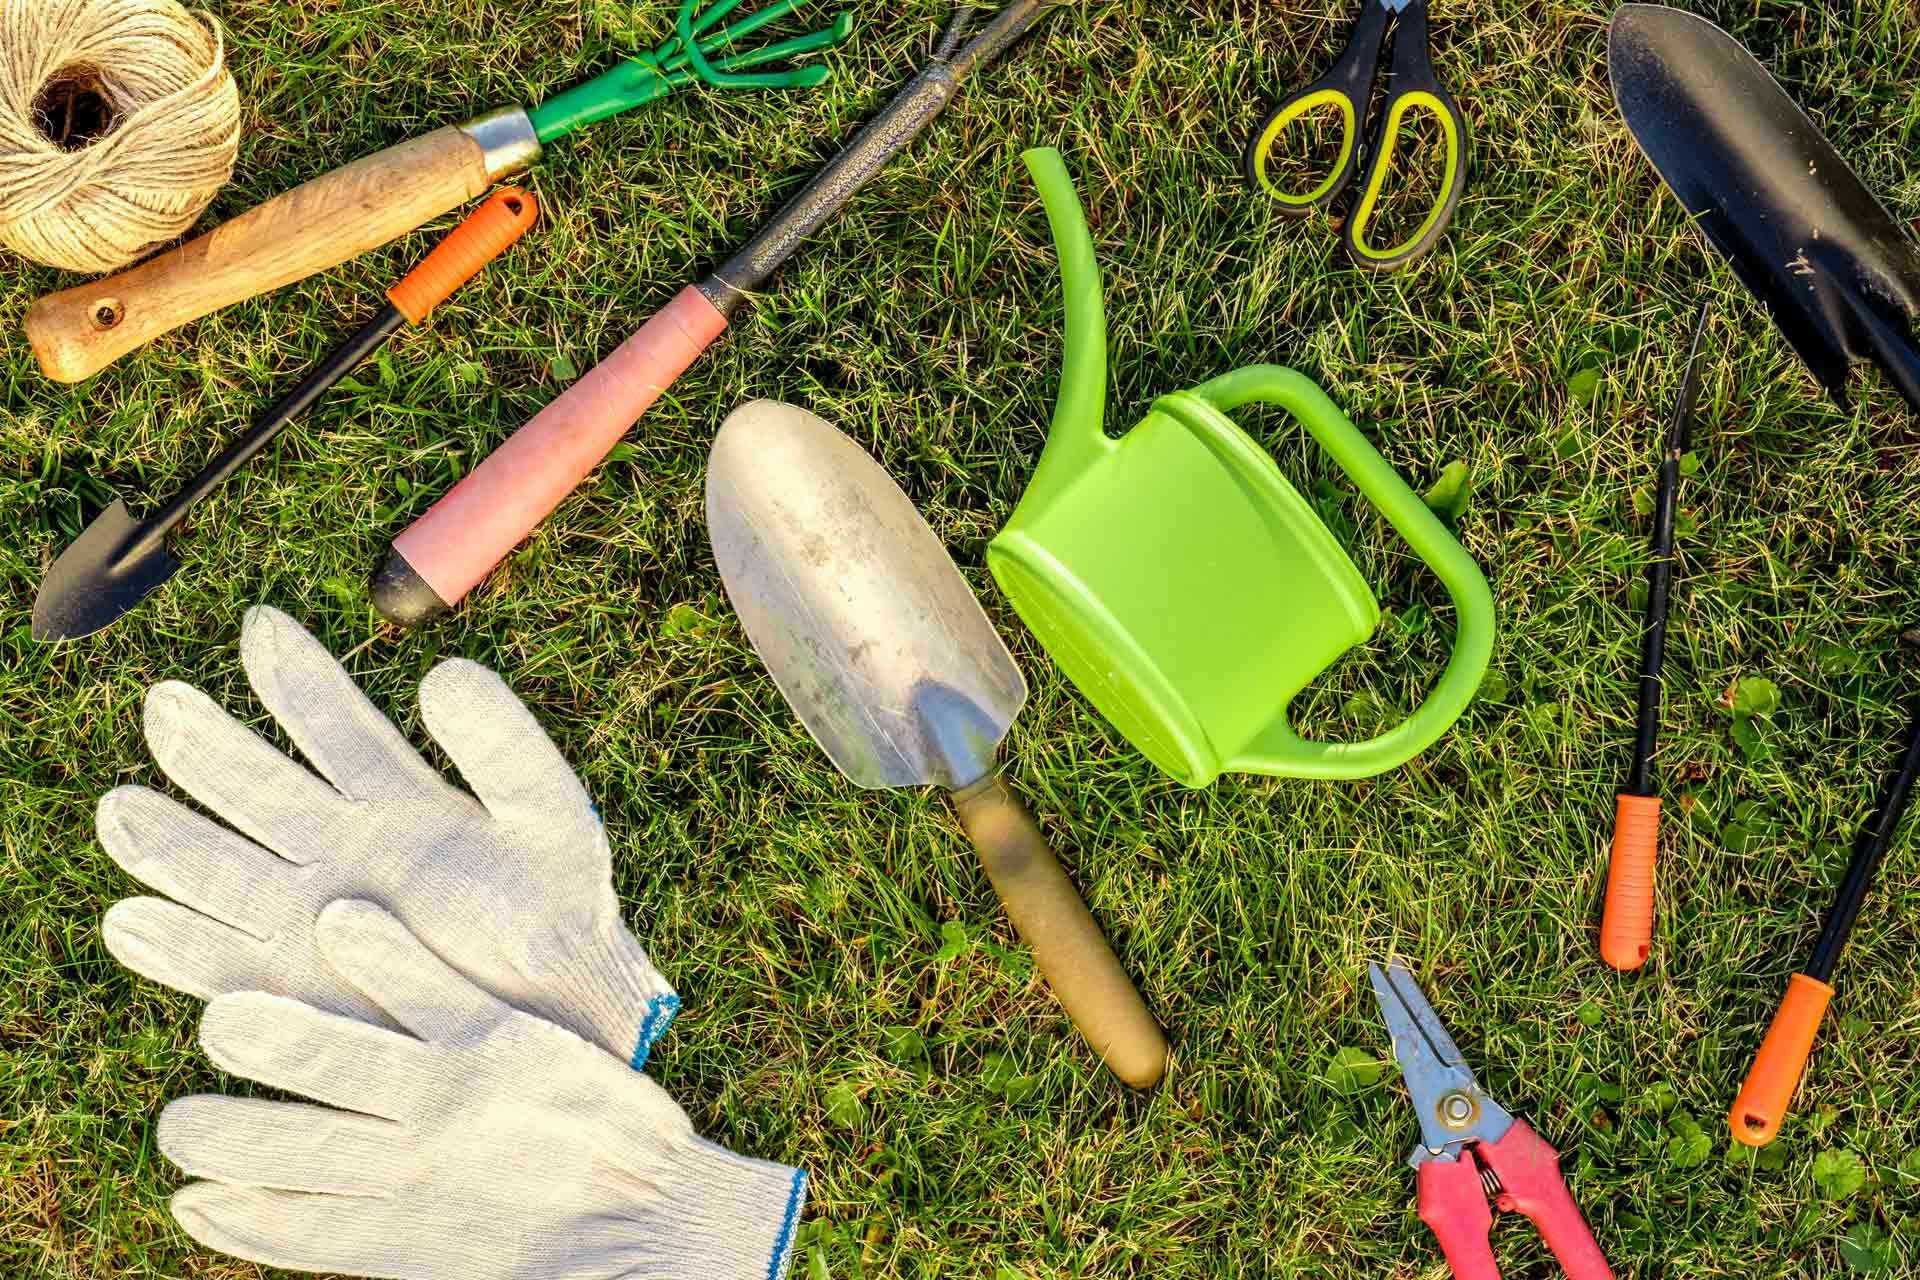 How To Prepare Your Lawn For Spring?